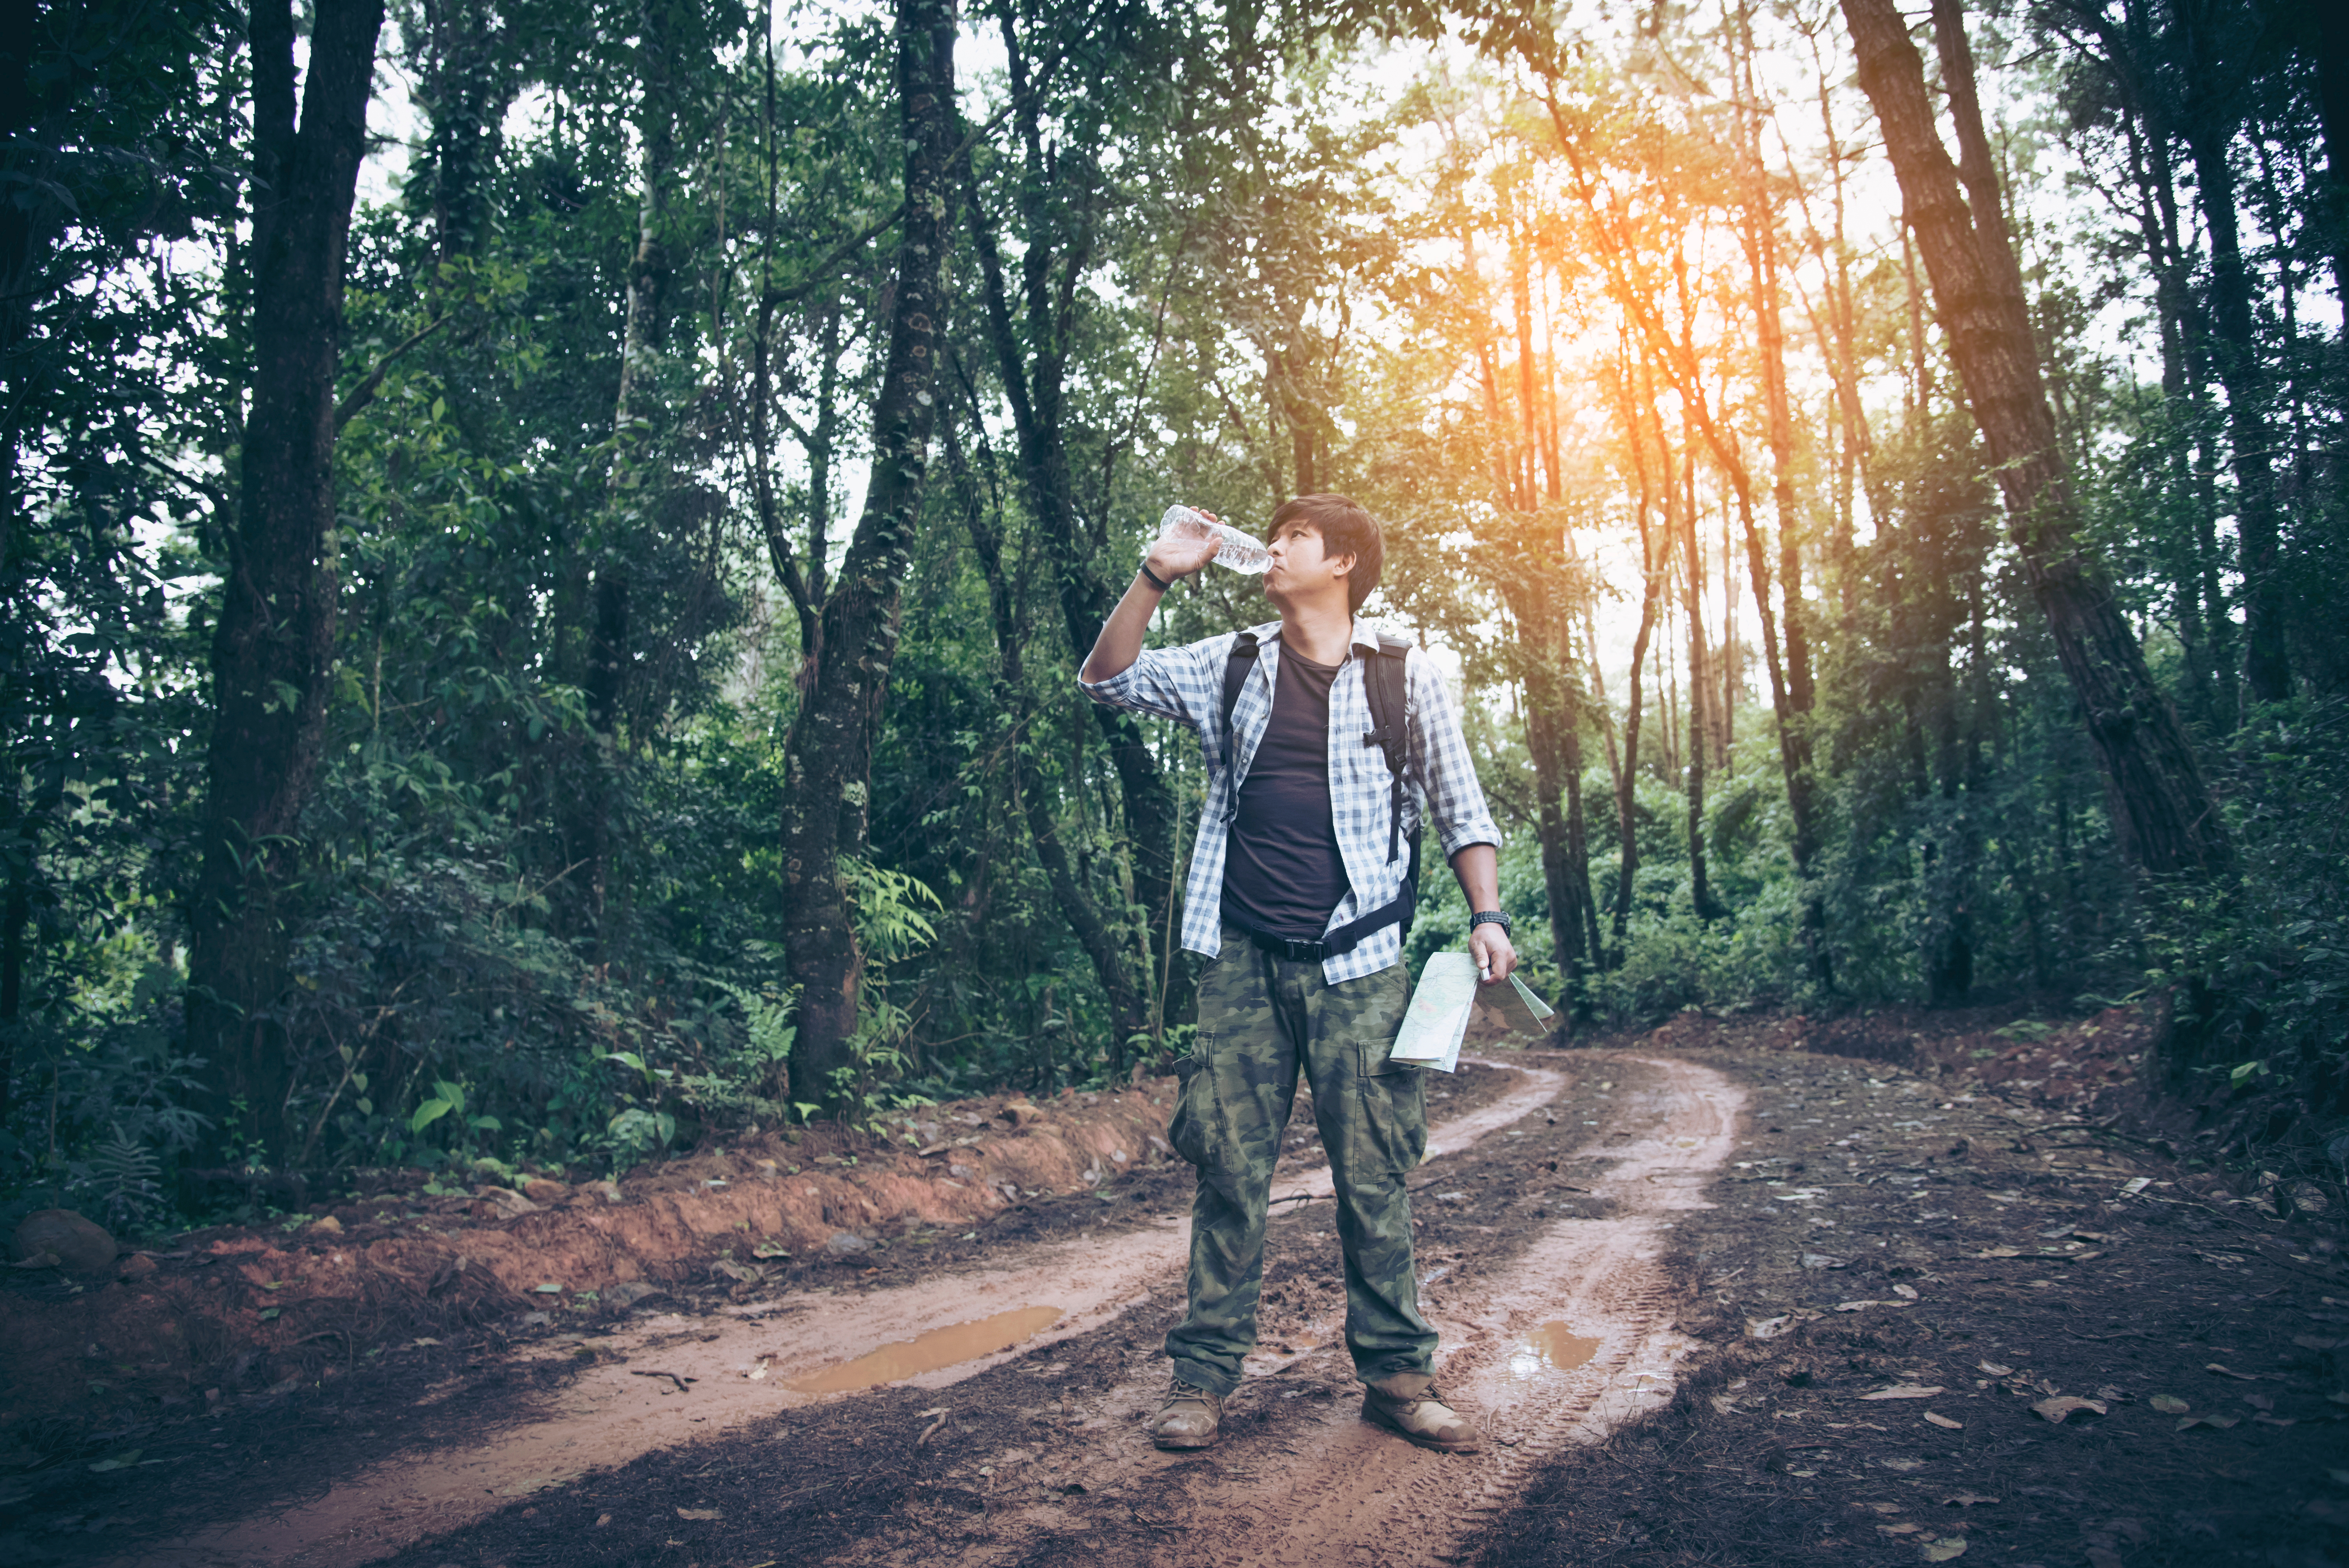 Drinking Water Safety for Travelers | SmarterTravel